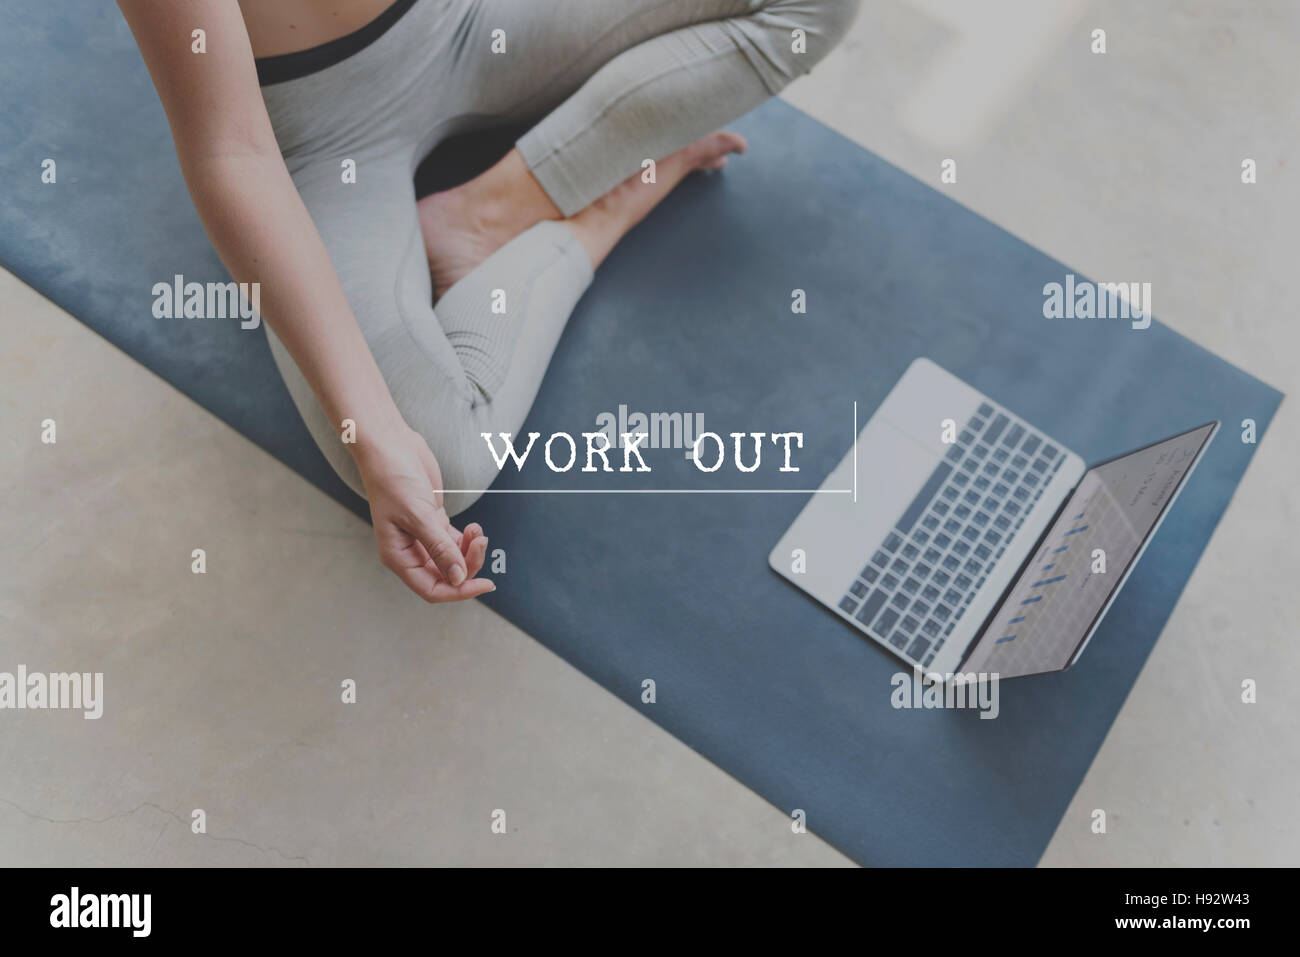 Work Out Cardio Wellbeing Exercise Fitness Active Concept - Stock Image